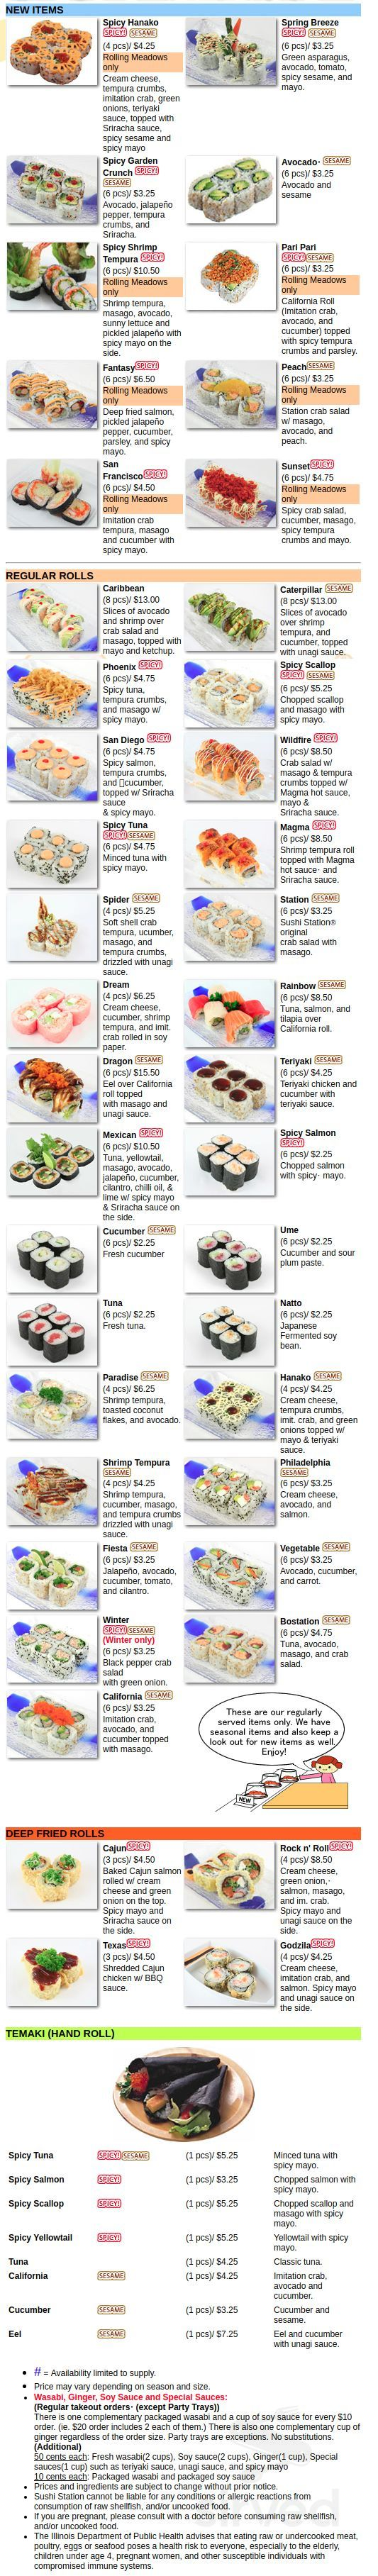 Sushi Station Menu In Rolling Meadows Illinois Usa The process took 1 day. sushi station menu in rolling meadows